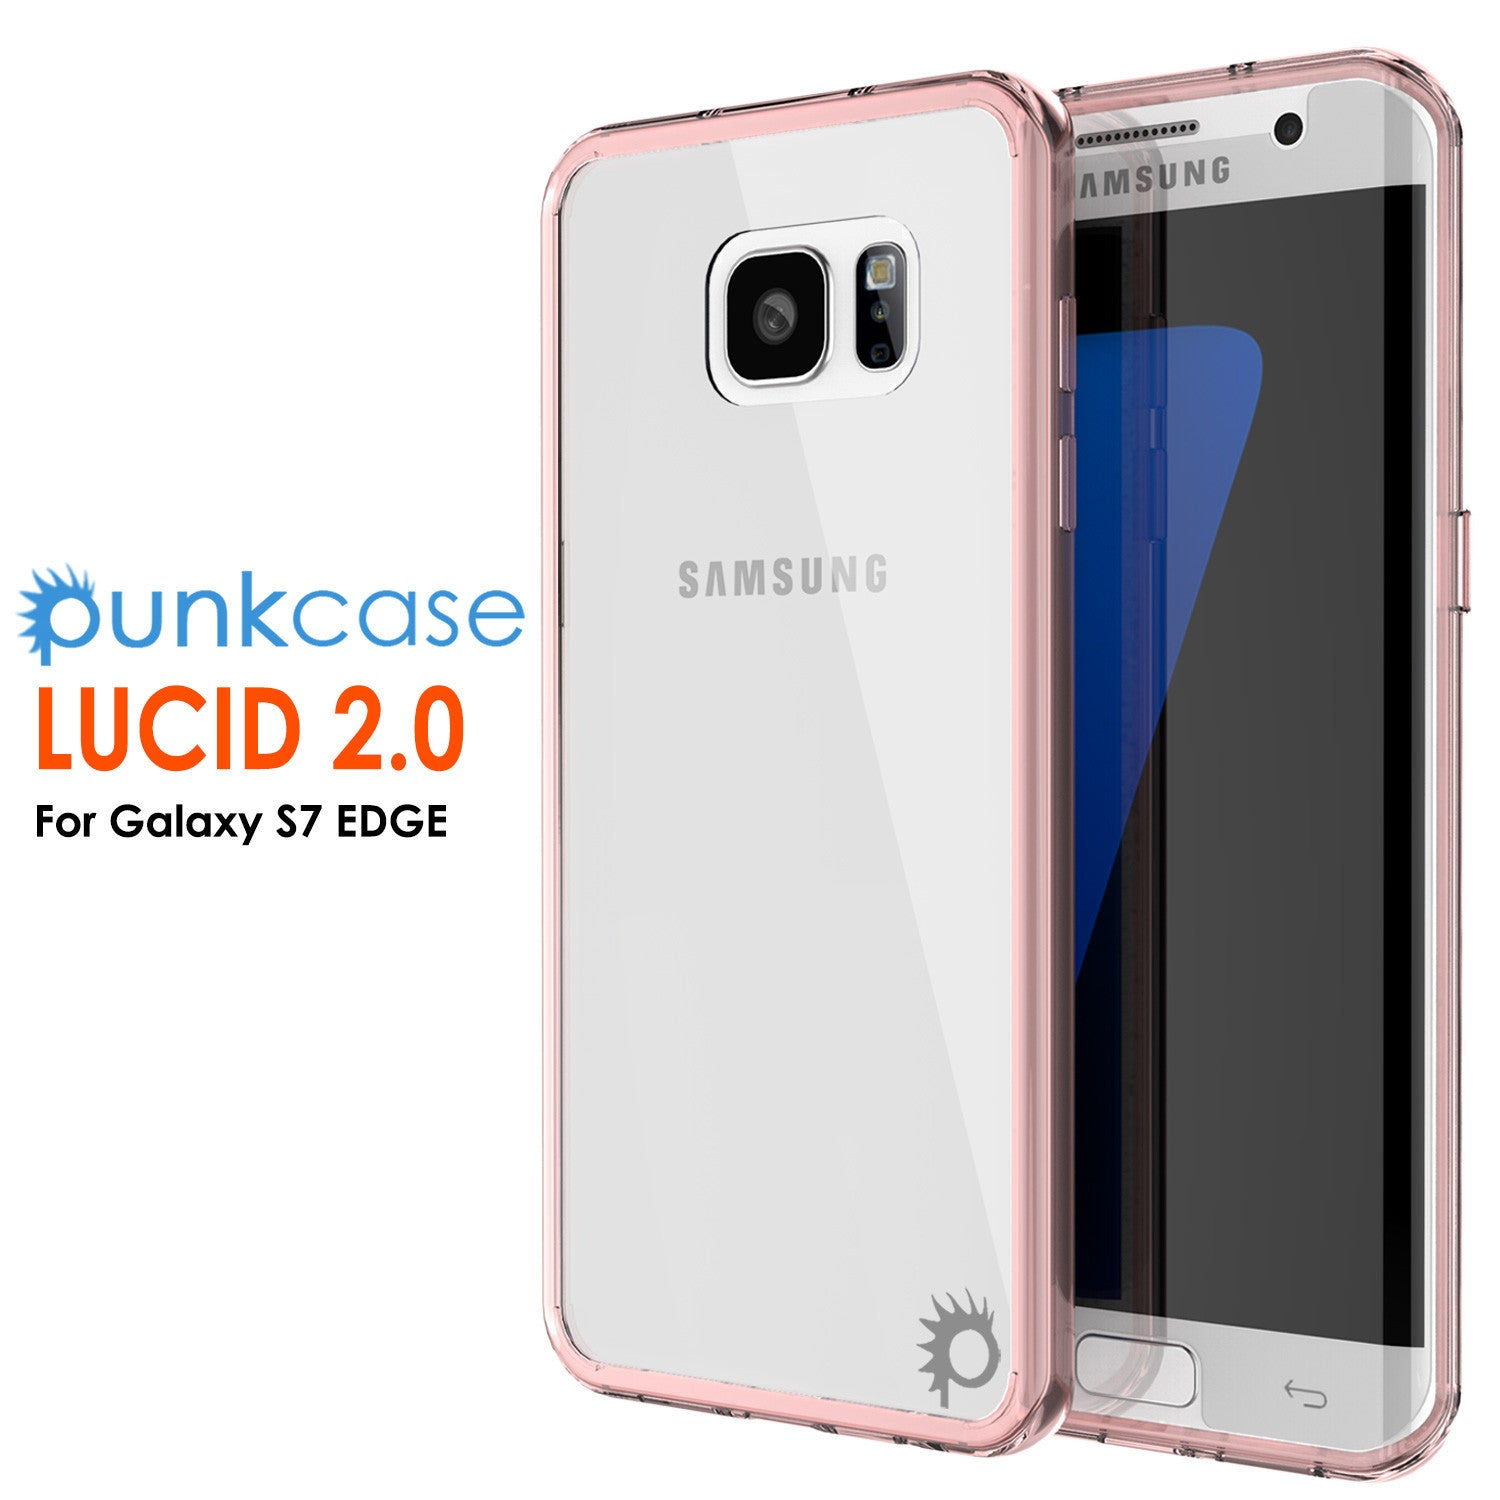 S7 Edge Case Punkcase® LUCID 2.0 Crystal Pink Series w/ PUNK SHIELD Screen Protector | Ultra Fit